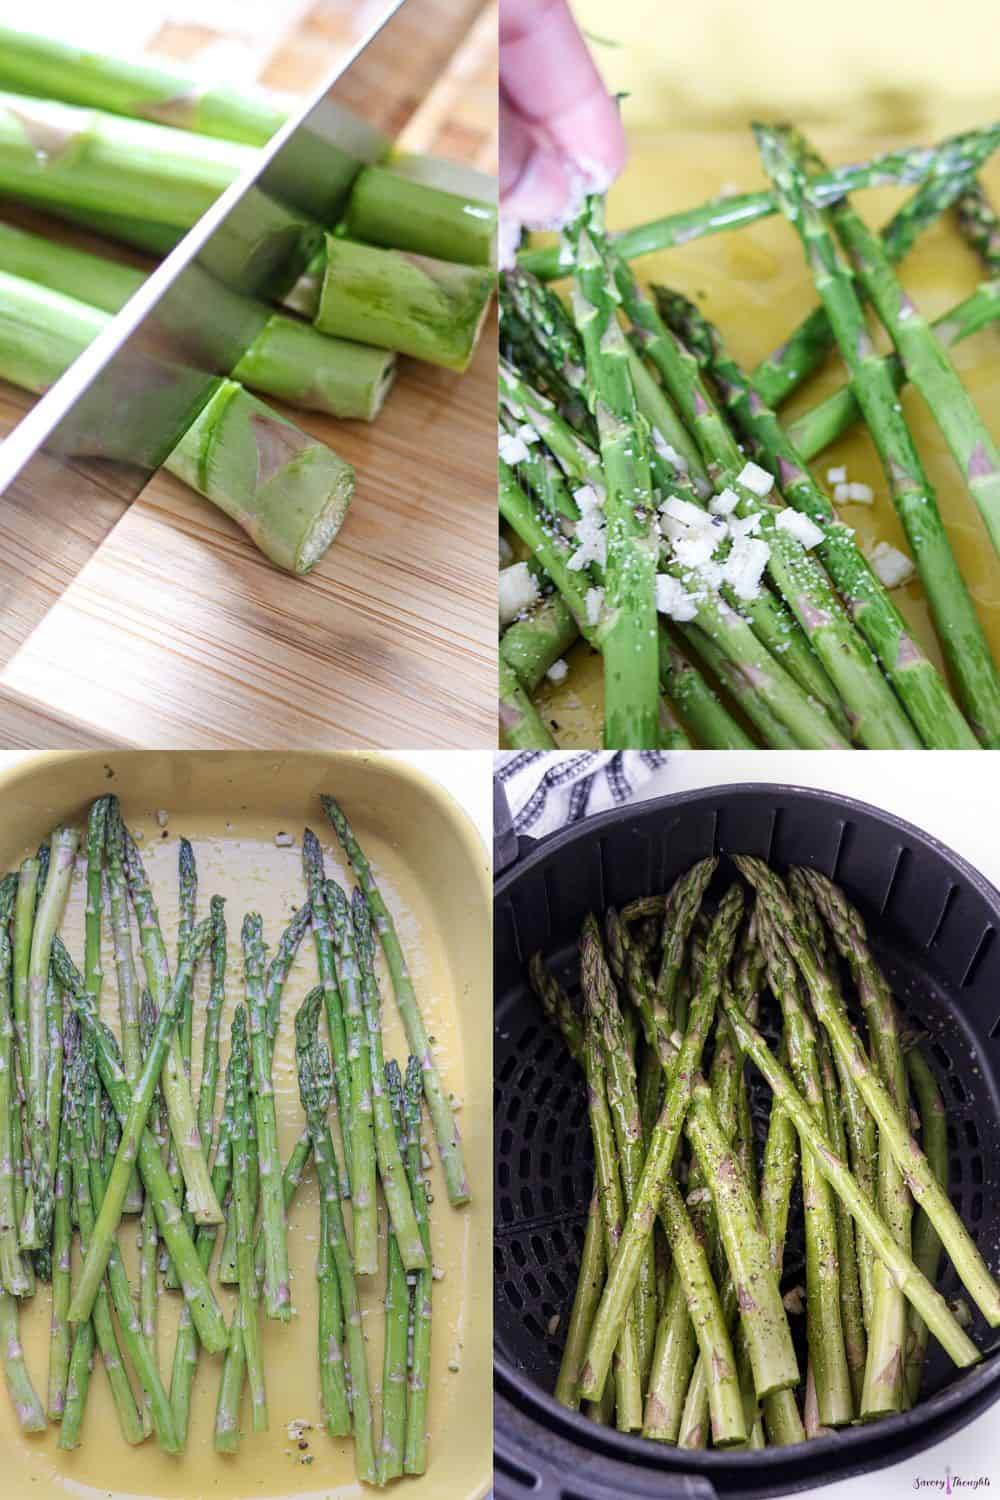 Step by step photo guide to cooking asparagus in the air fryer